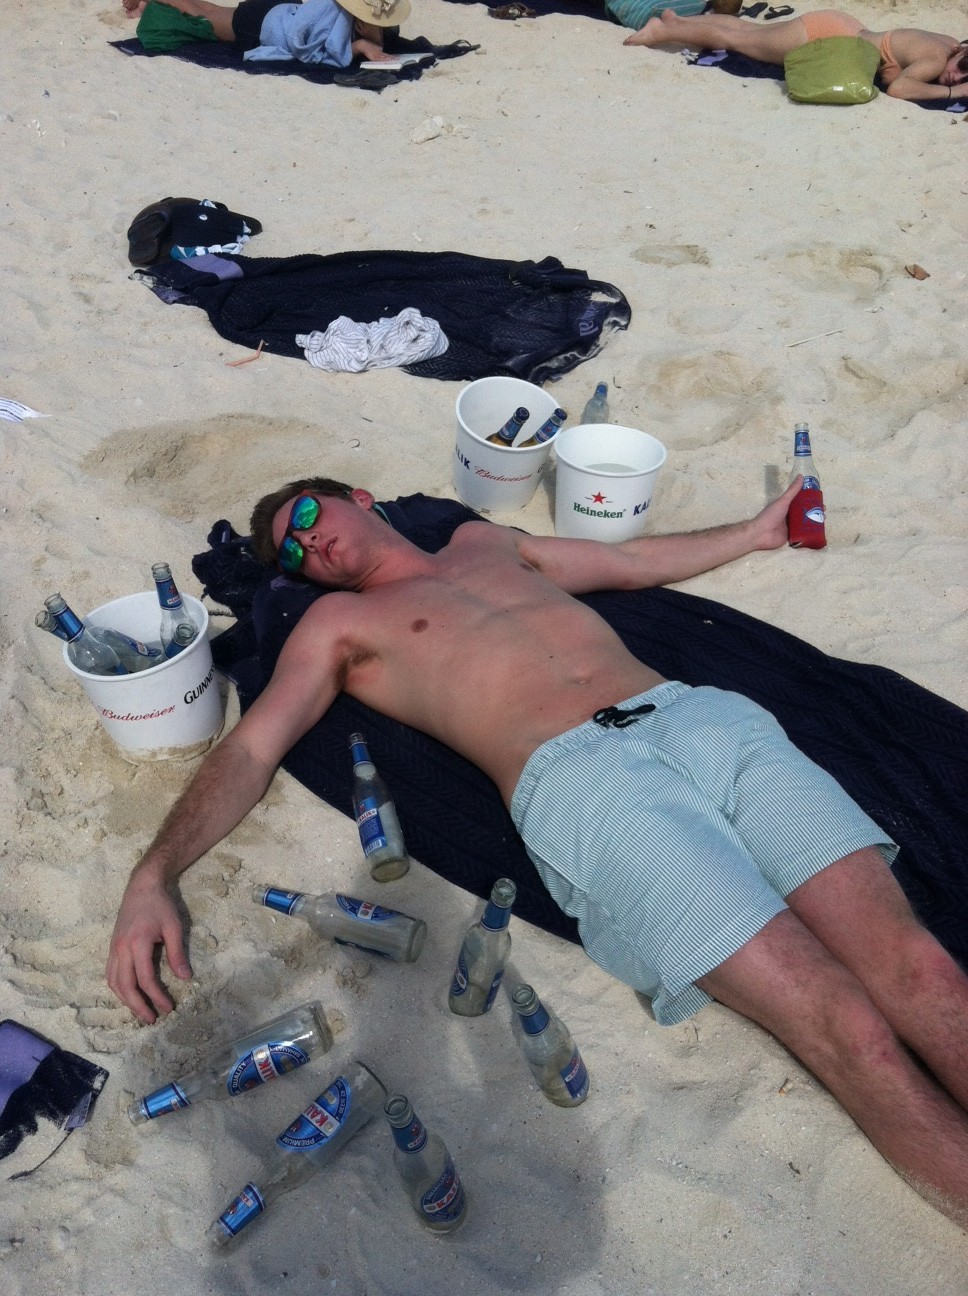 sukangpaombong:  Passed out by 11AM, koozie still keepin' that beer cold. TFM. Posted by keepinitcheesy 13 hours ago  Looks like formal!